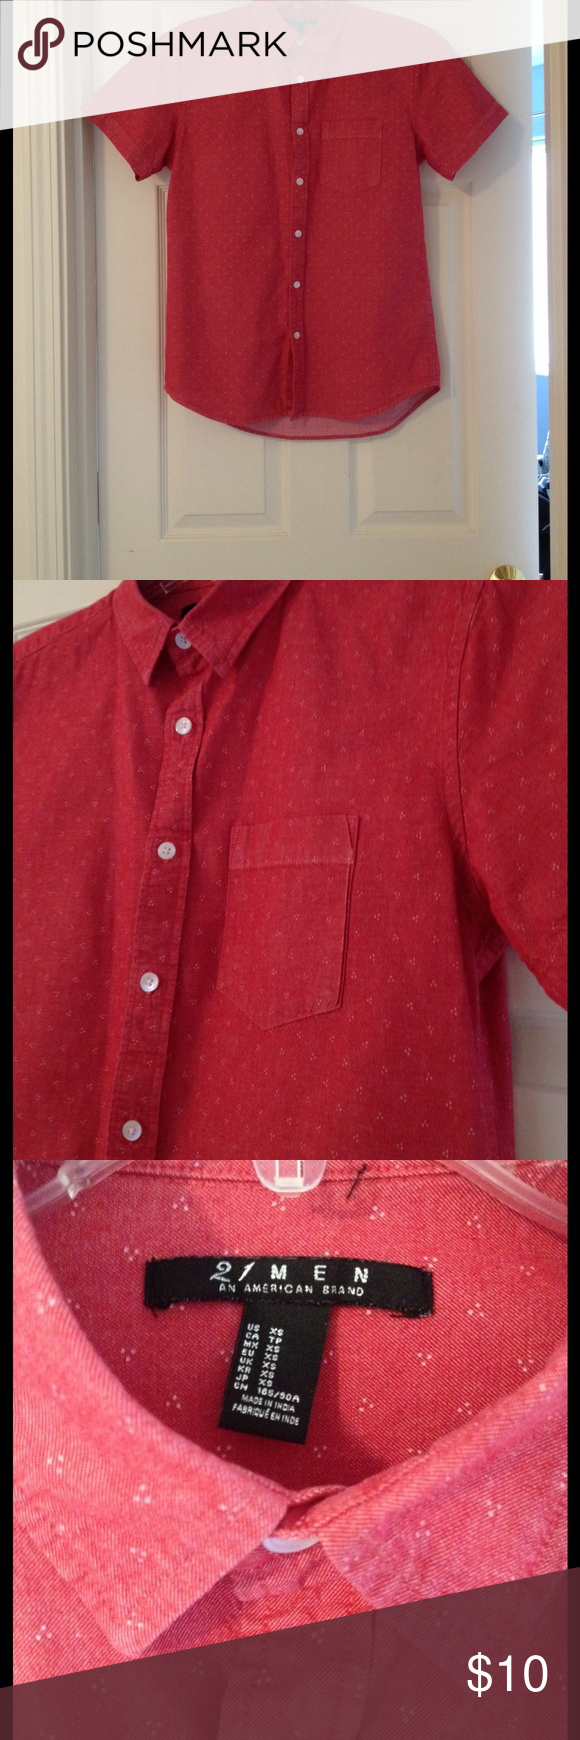 F21 Chambray Button Up Shirt Good used condition. Chambray/denim shirt. Red in color with small white details. Great shirt. My brother just grew out of it! Forever 21 Shirts Casual Button Down Shirts